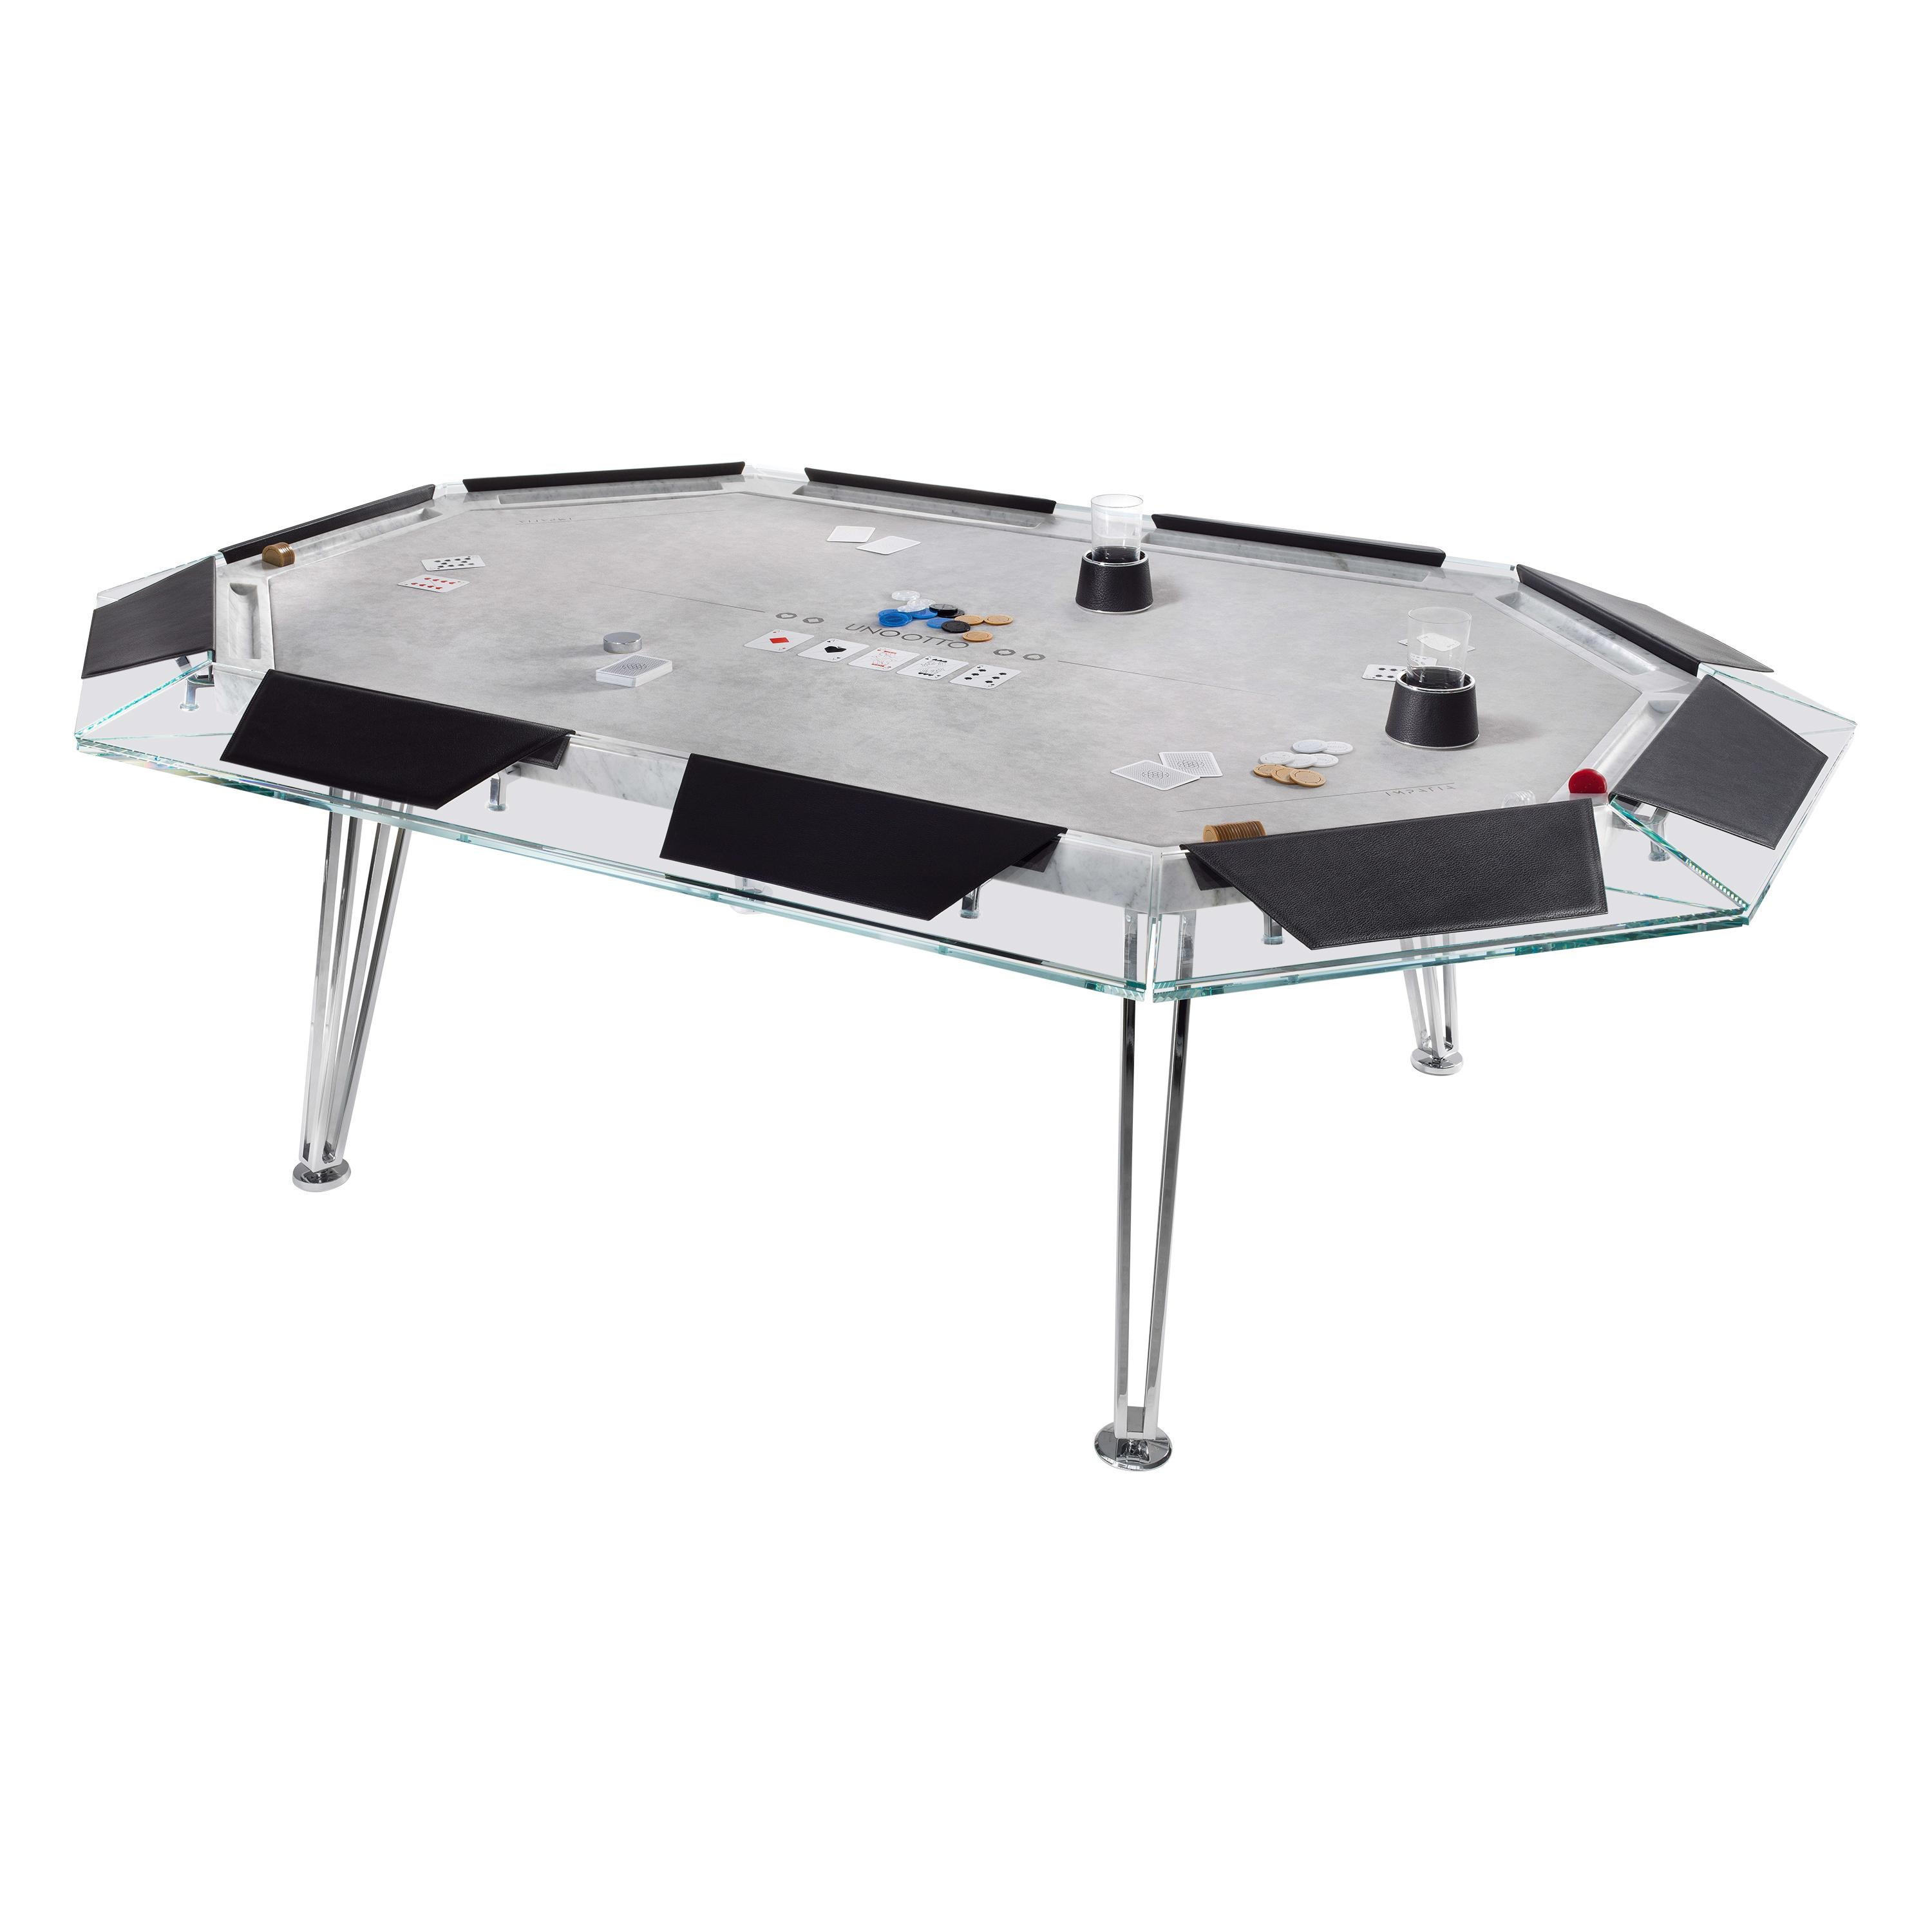 Unootto Marble Edition, 10 Player Poker Table, by Impatia